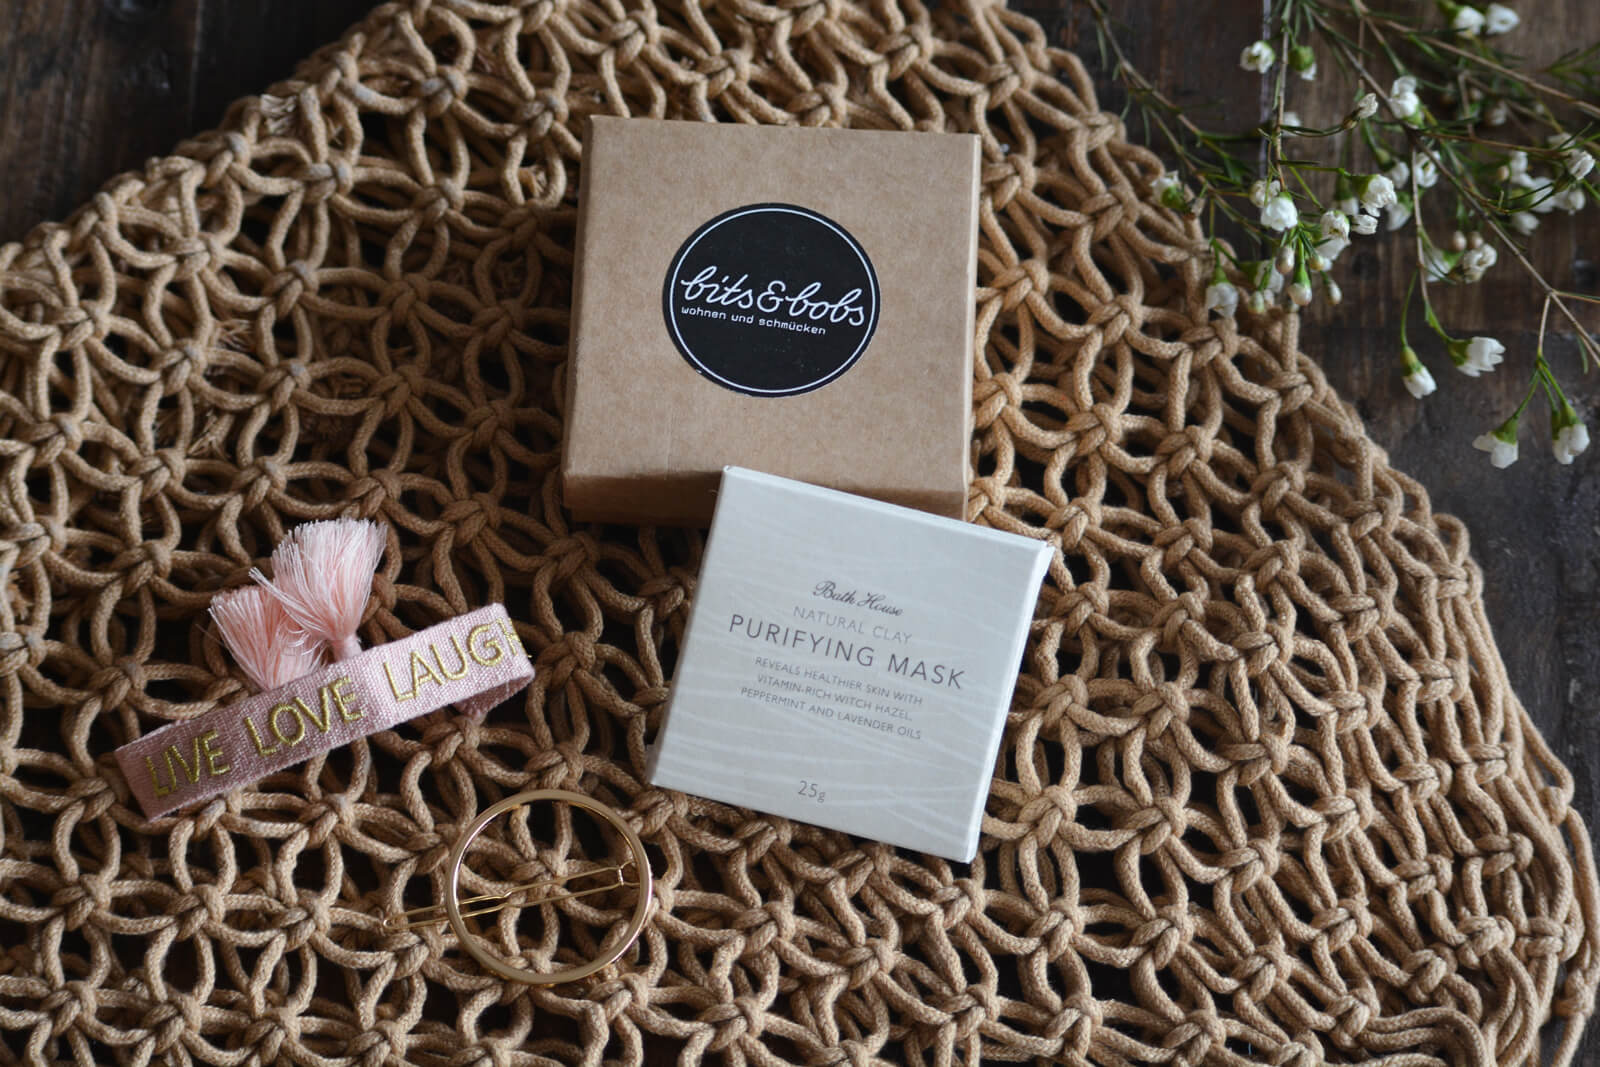 Home Spa Gifts from the Bits & Bobs Online Shop